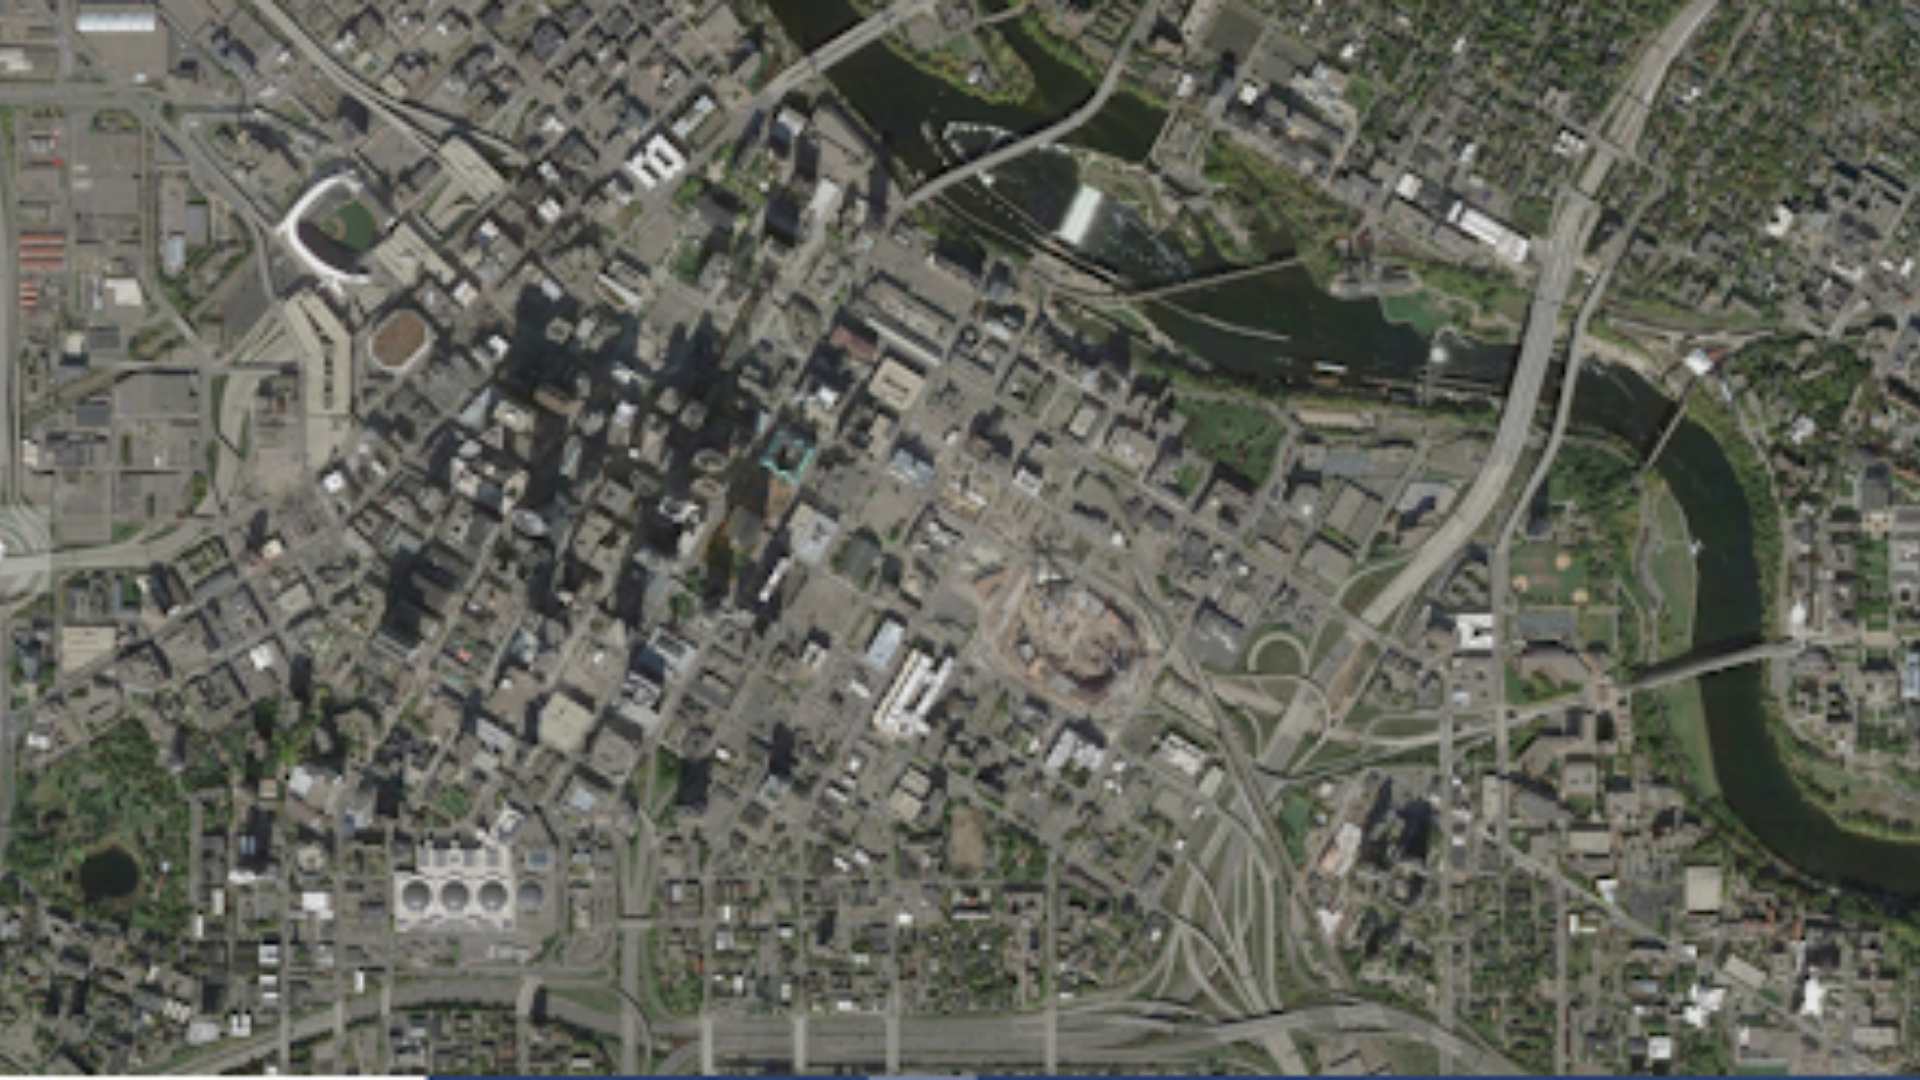 Downtown Minneapolis in 2014 with many highways cutting through the city, lots used for parking